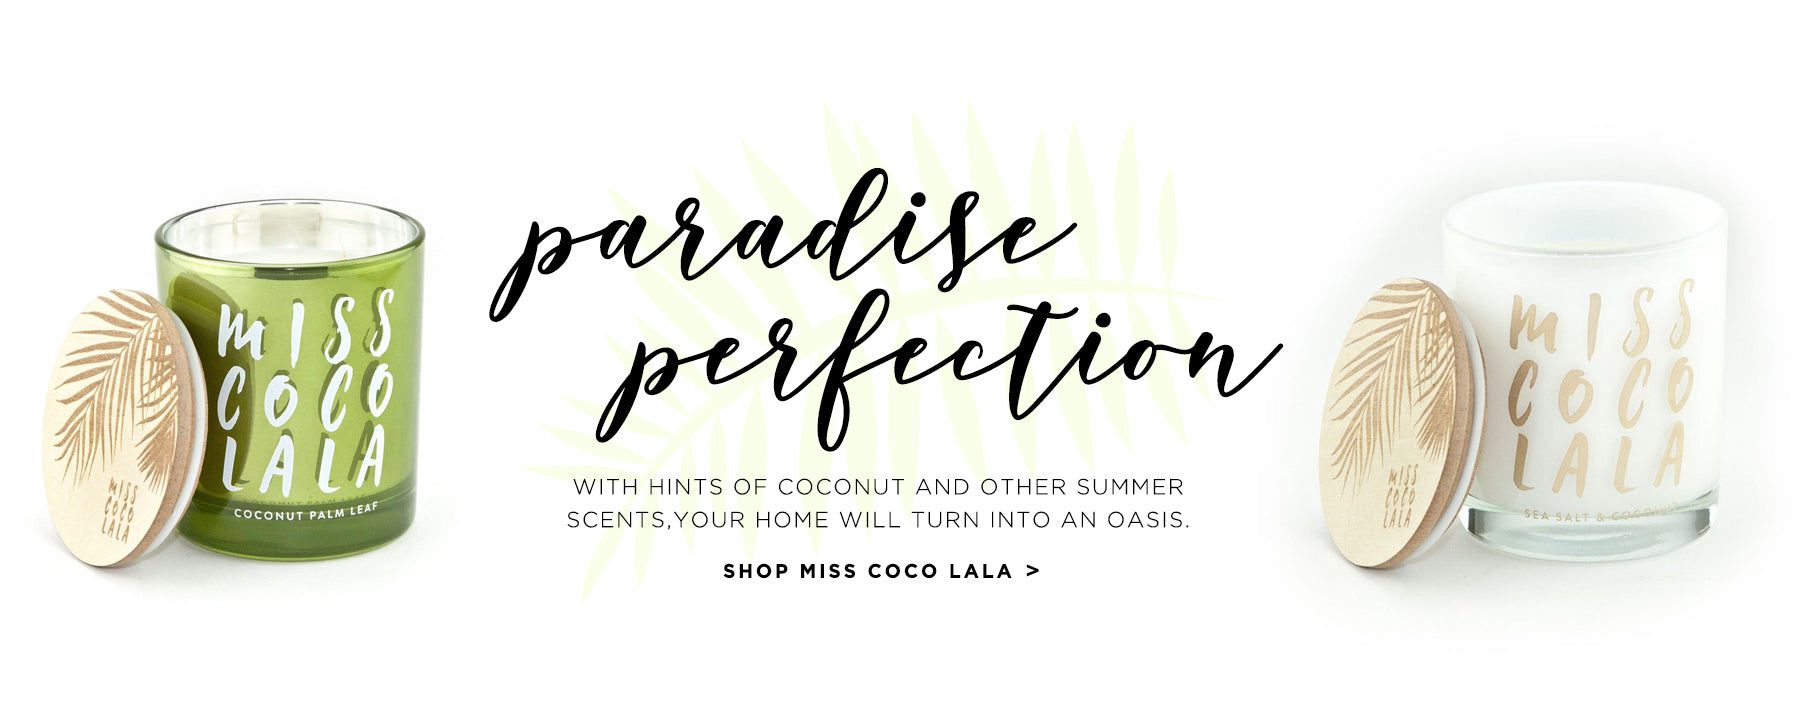 Paradise perfection. With hints of coconut and other summer scents, your home will turn into an oasis. Shop Miss Coco Lala.